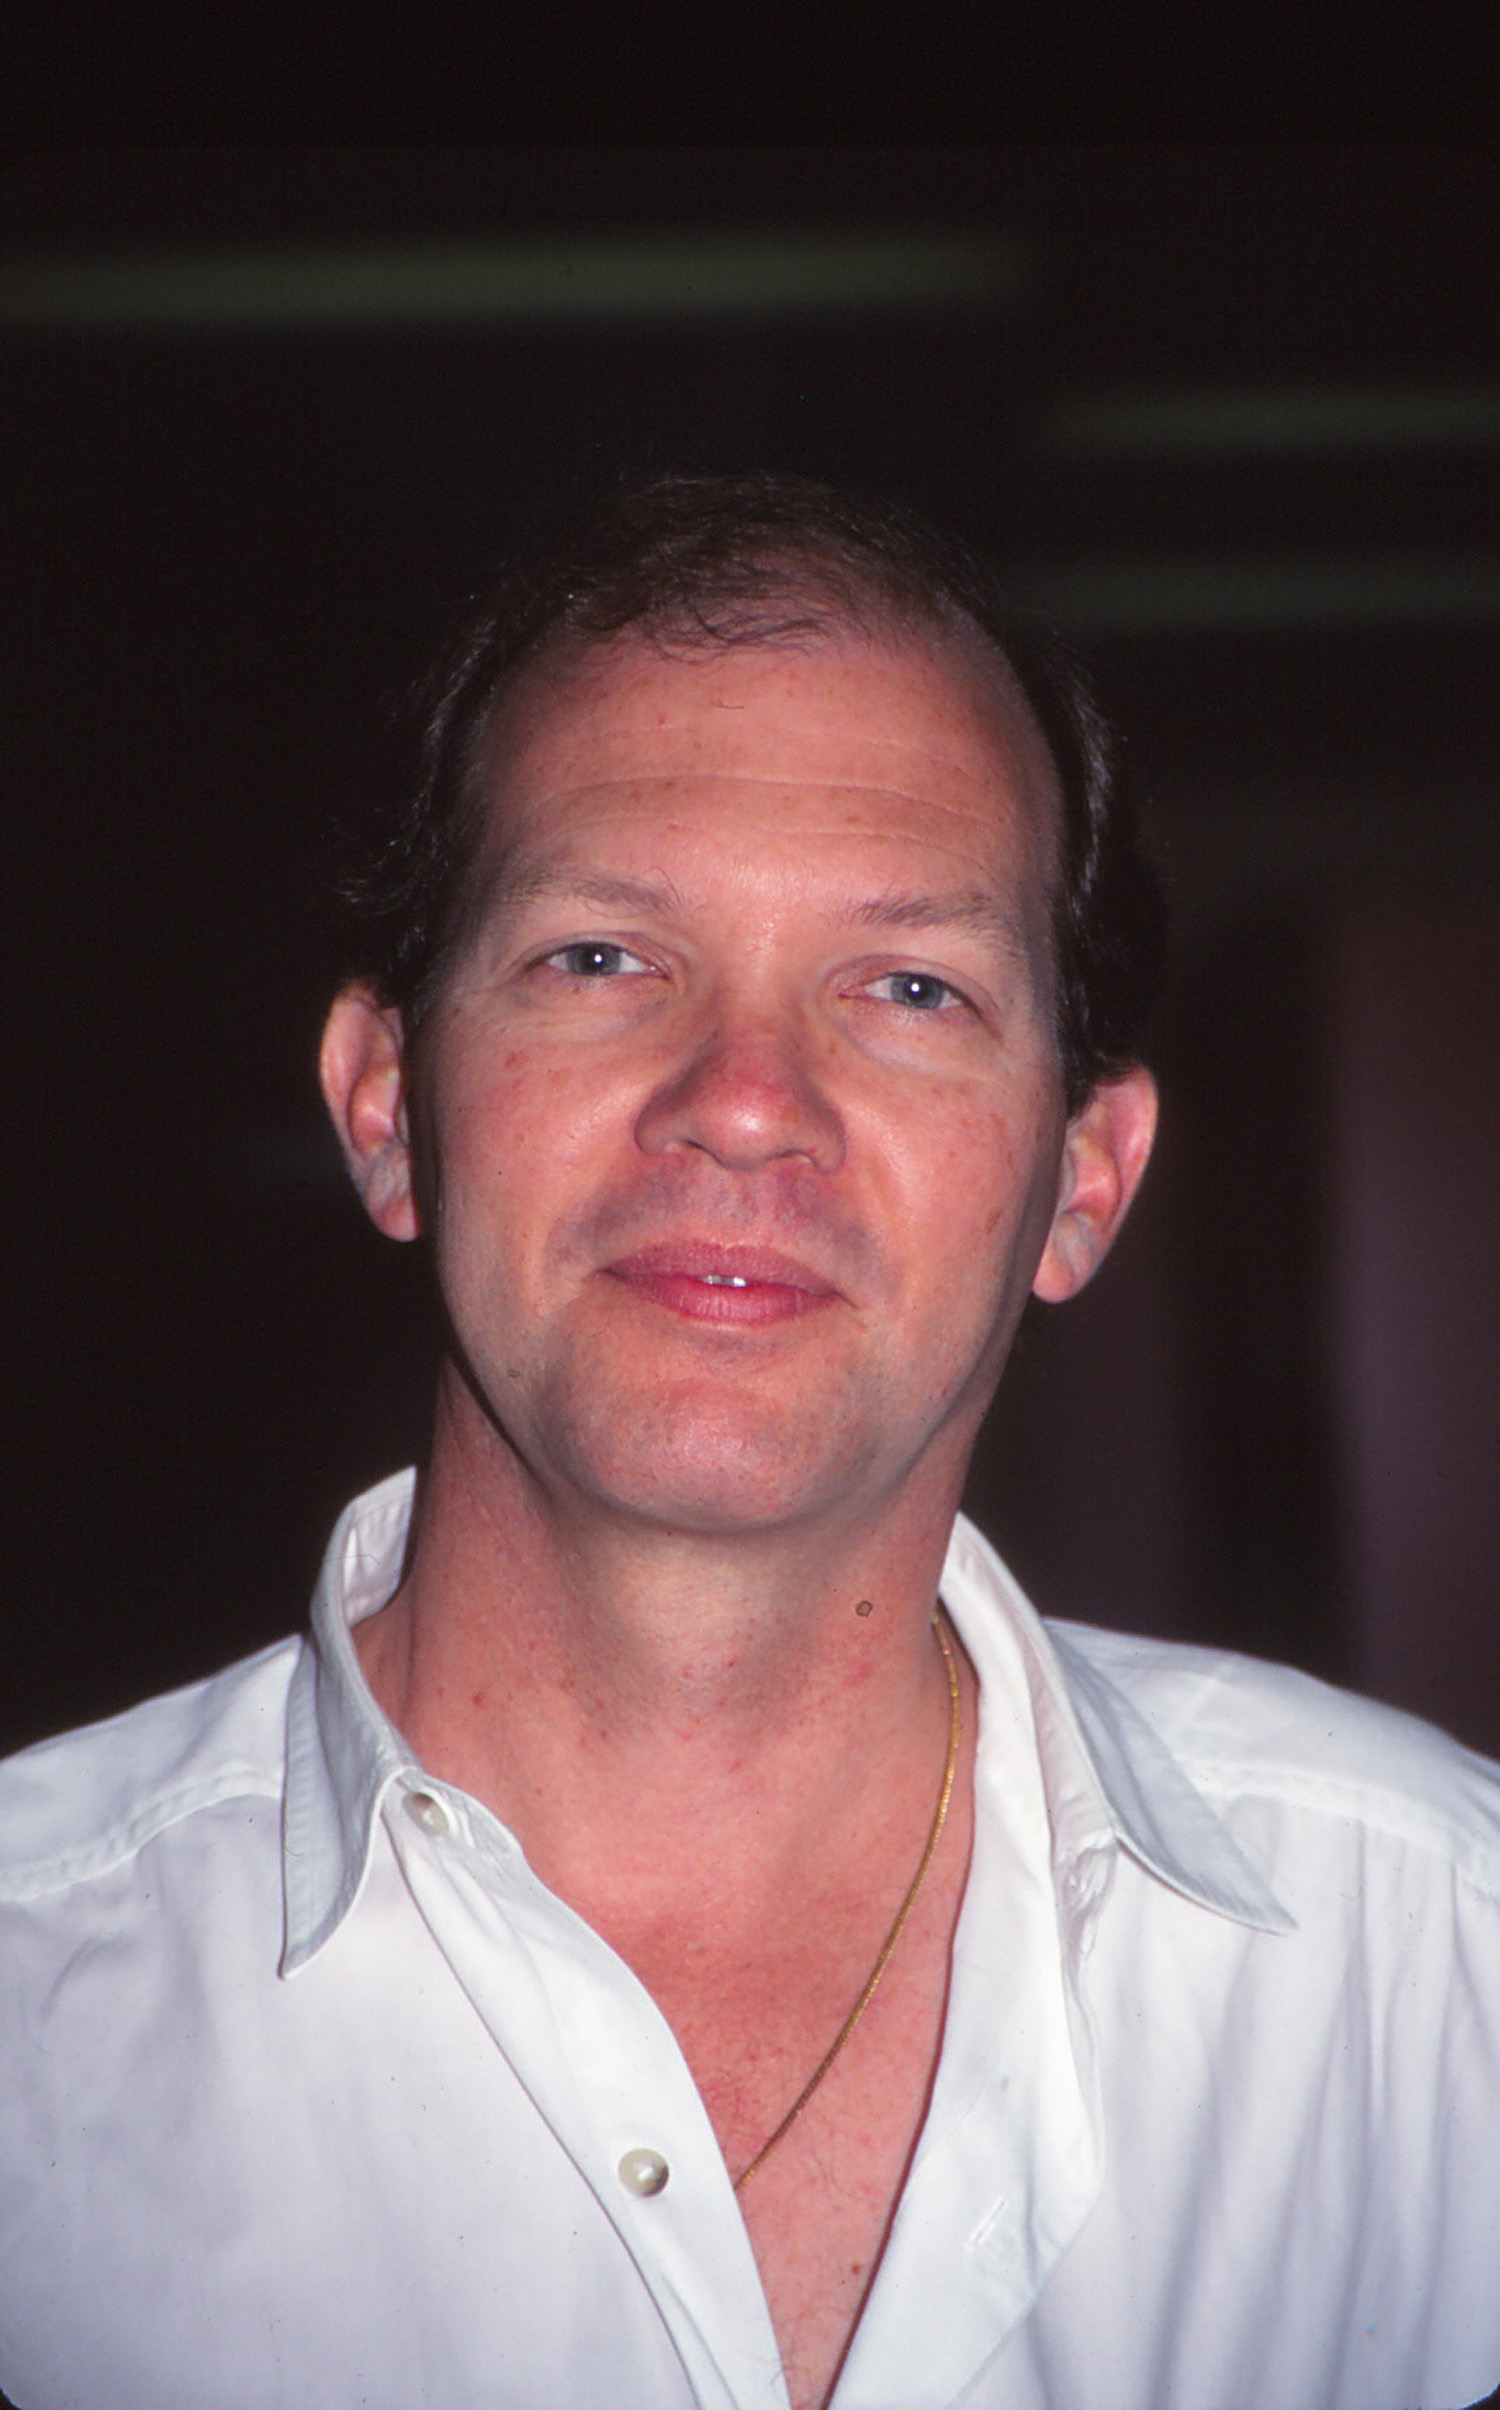 William Wayt Thomas in 1996. Photo by C. A. Gracie.